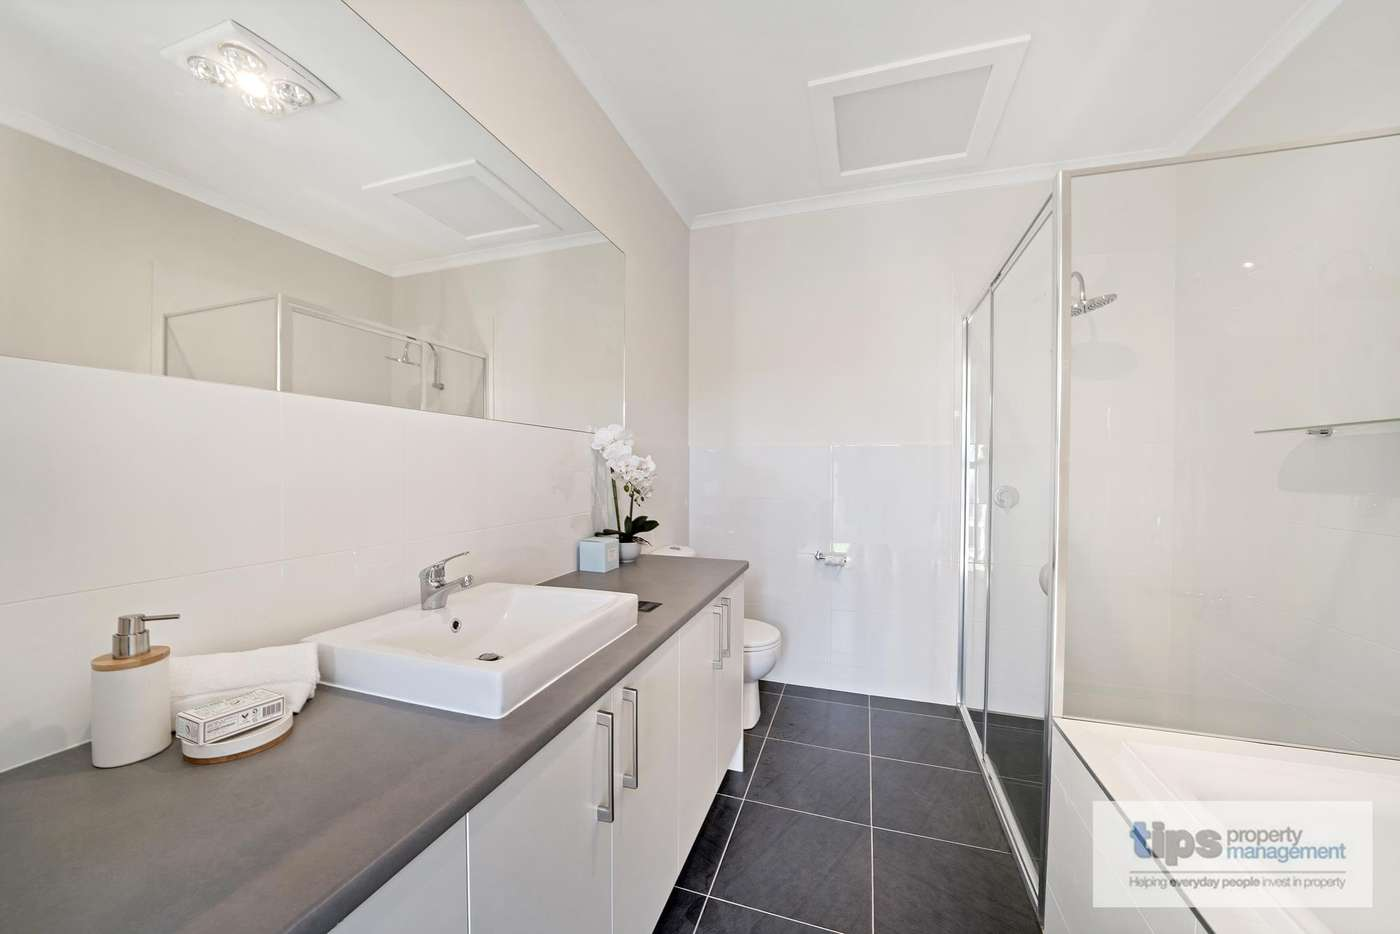 Sixth view of Homely house listing, 3C Norma St, Mile End SA 5031